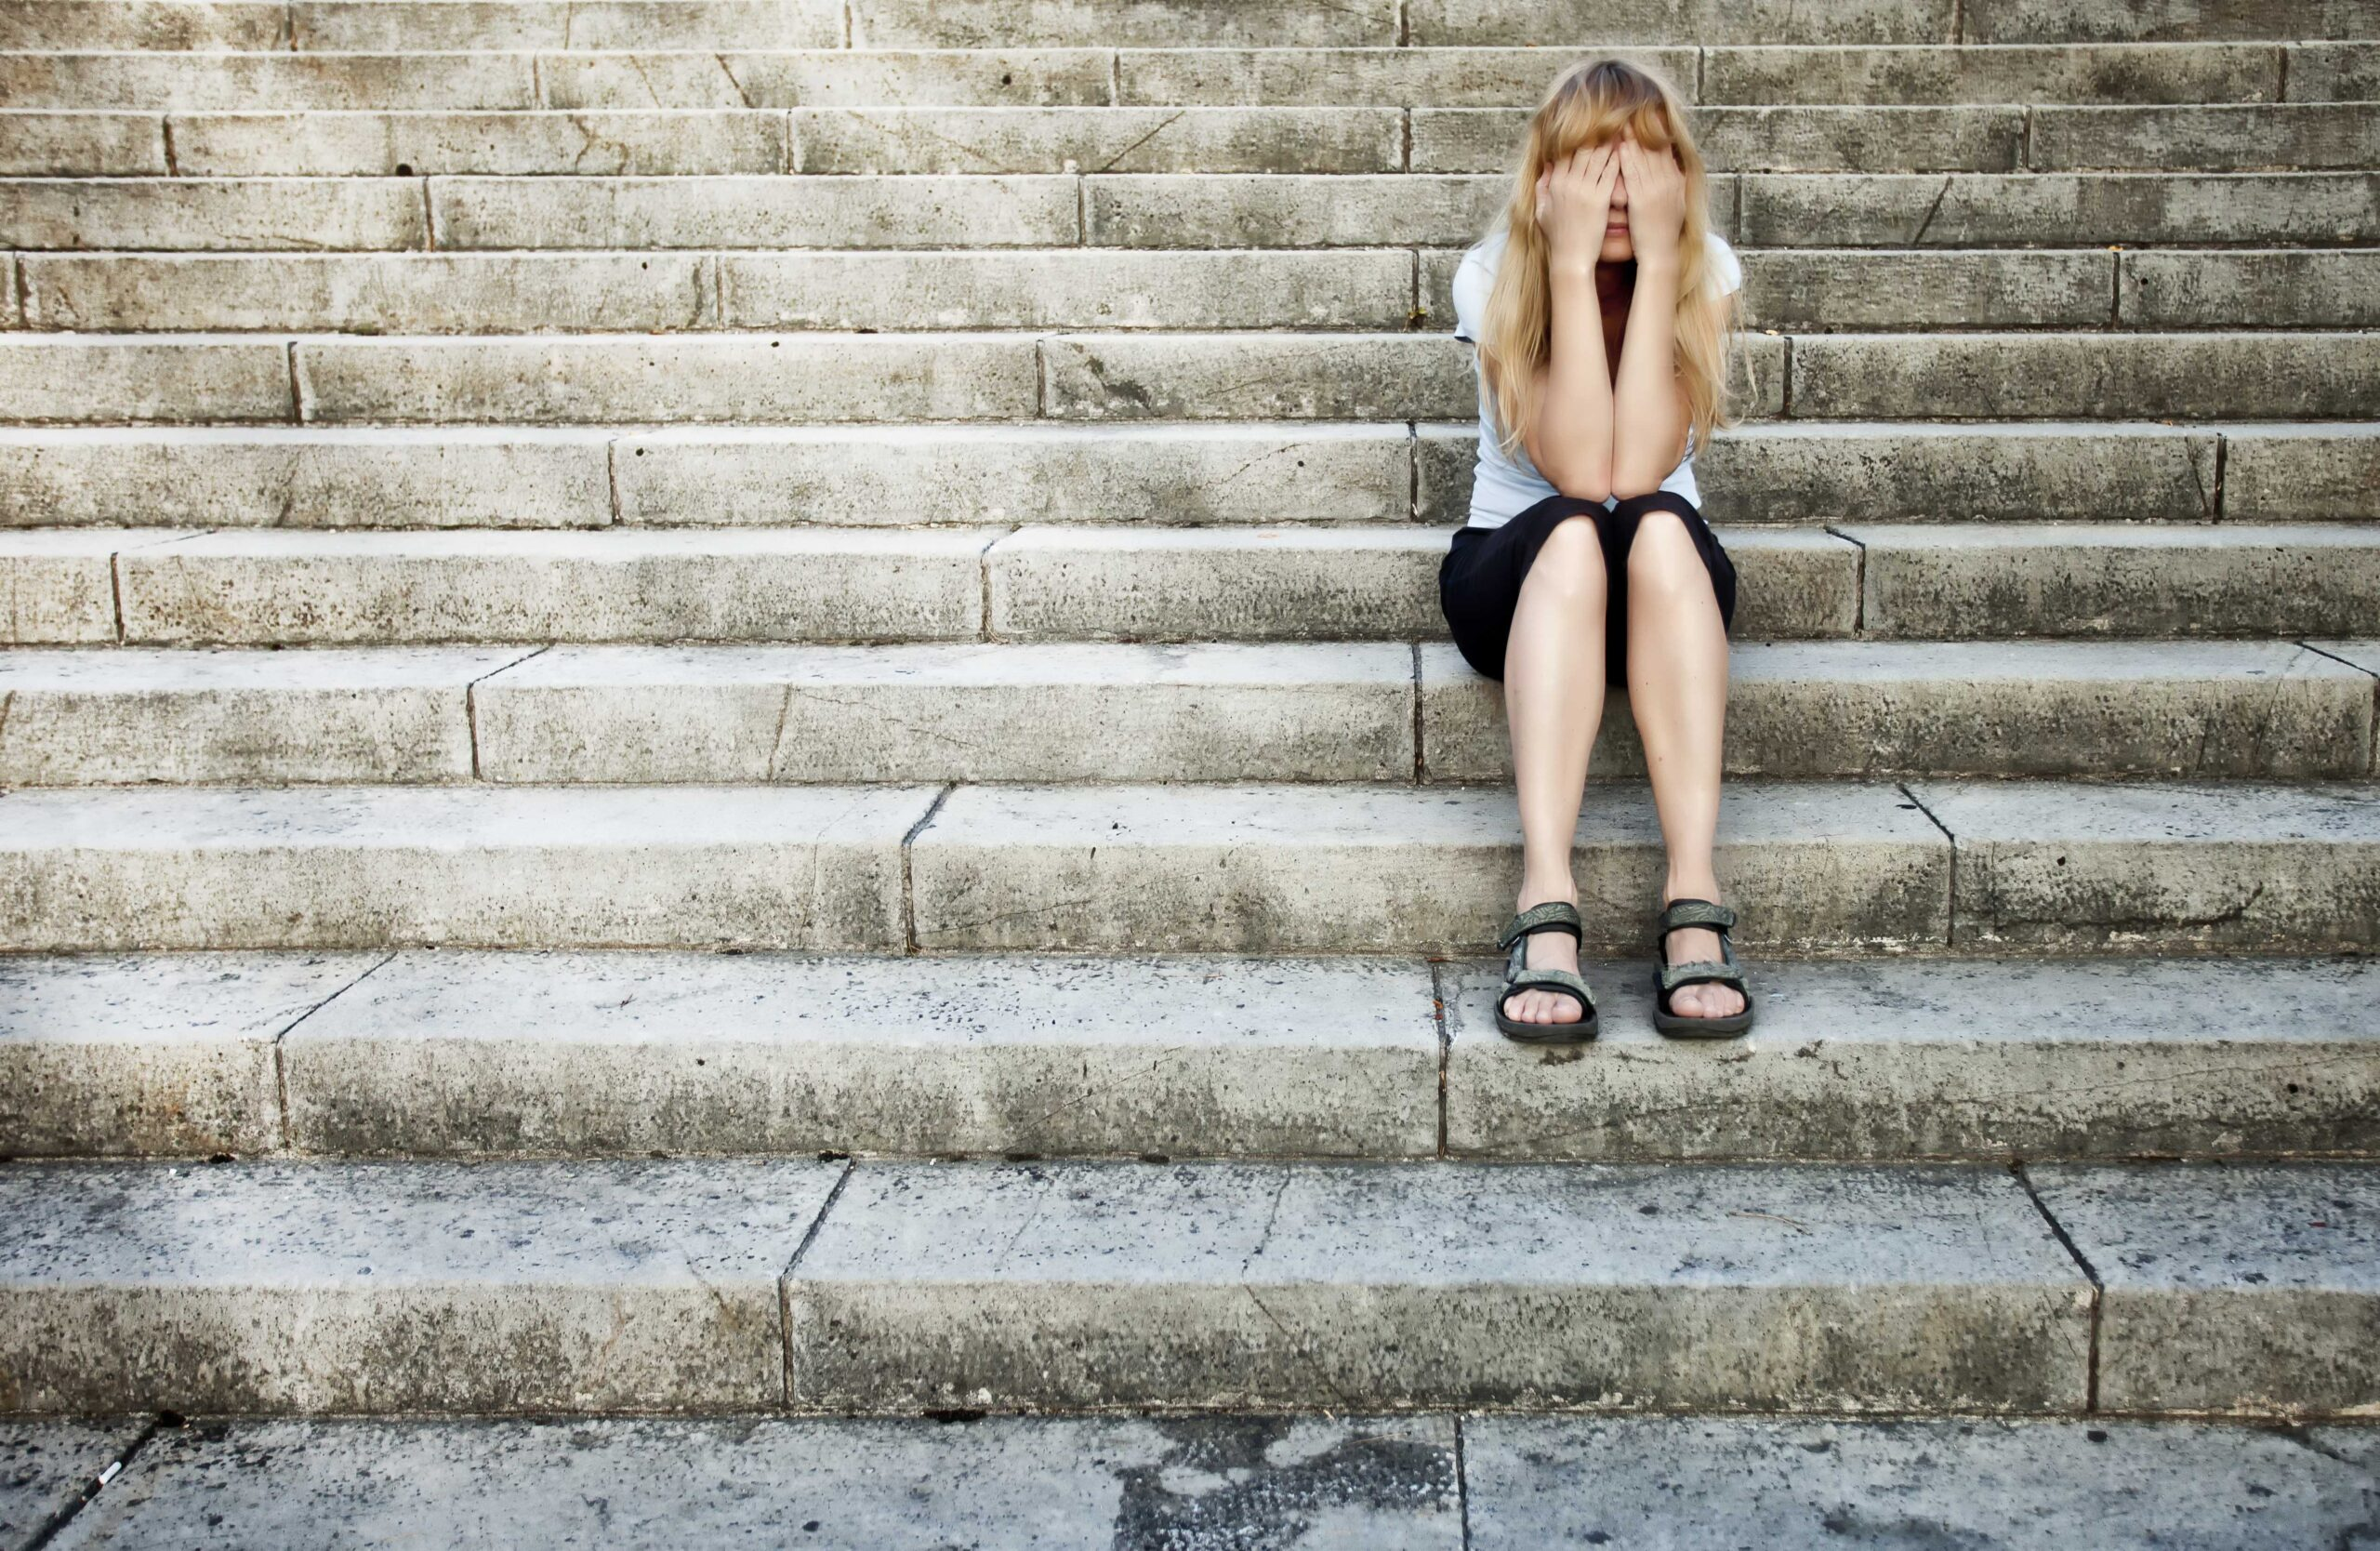 A depressed girl, family law